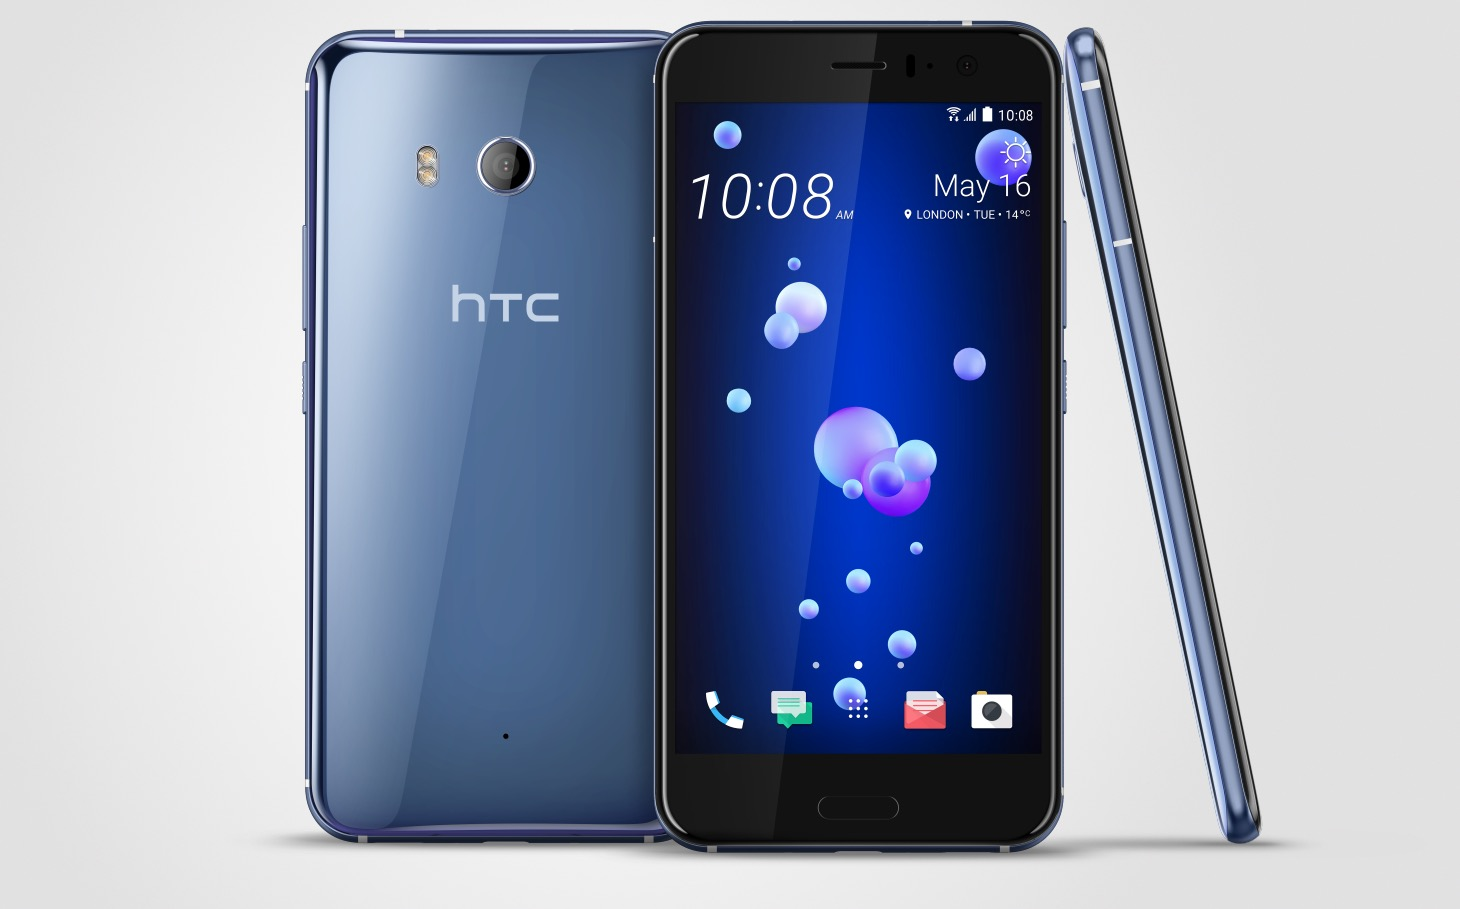 HTC reveals its latest smartphone squeeze, the U11